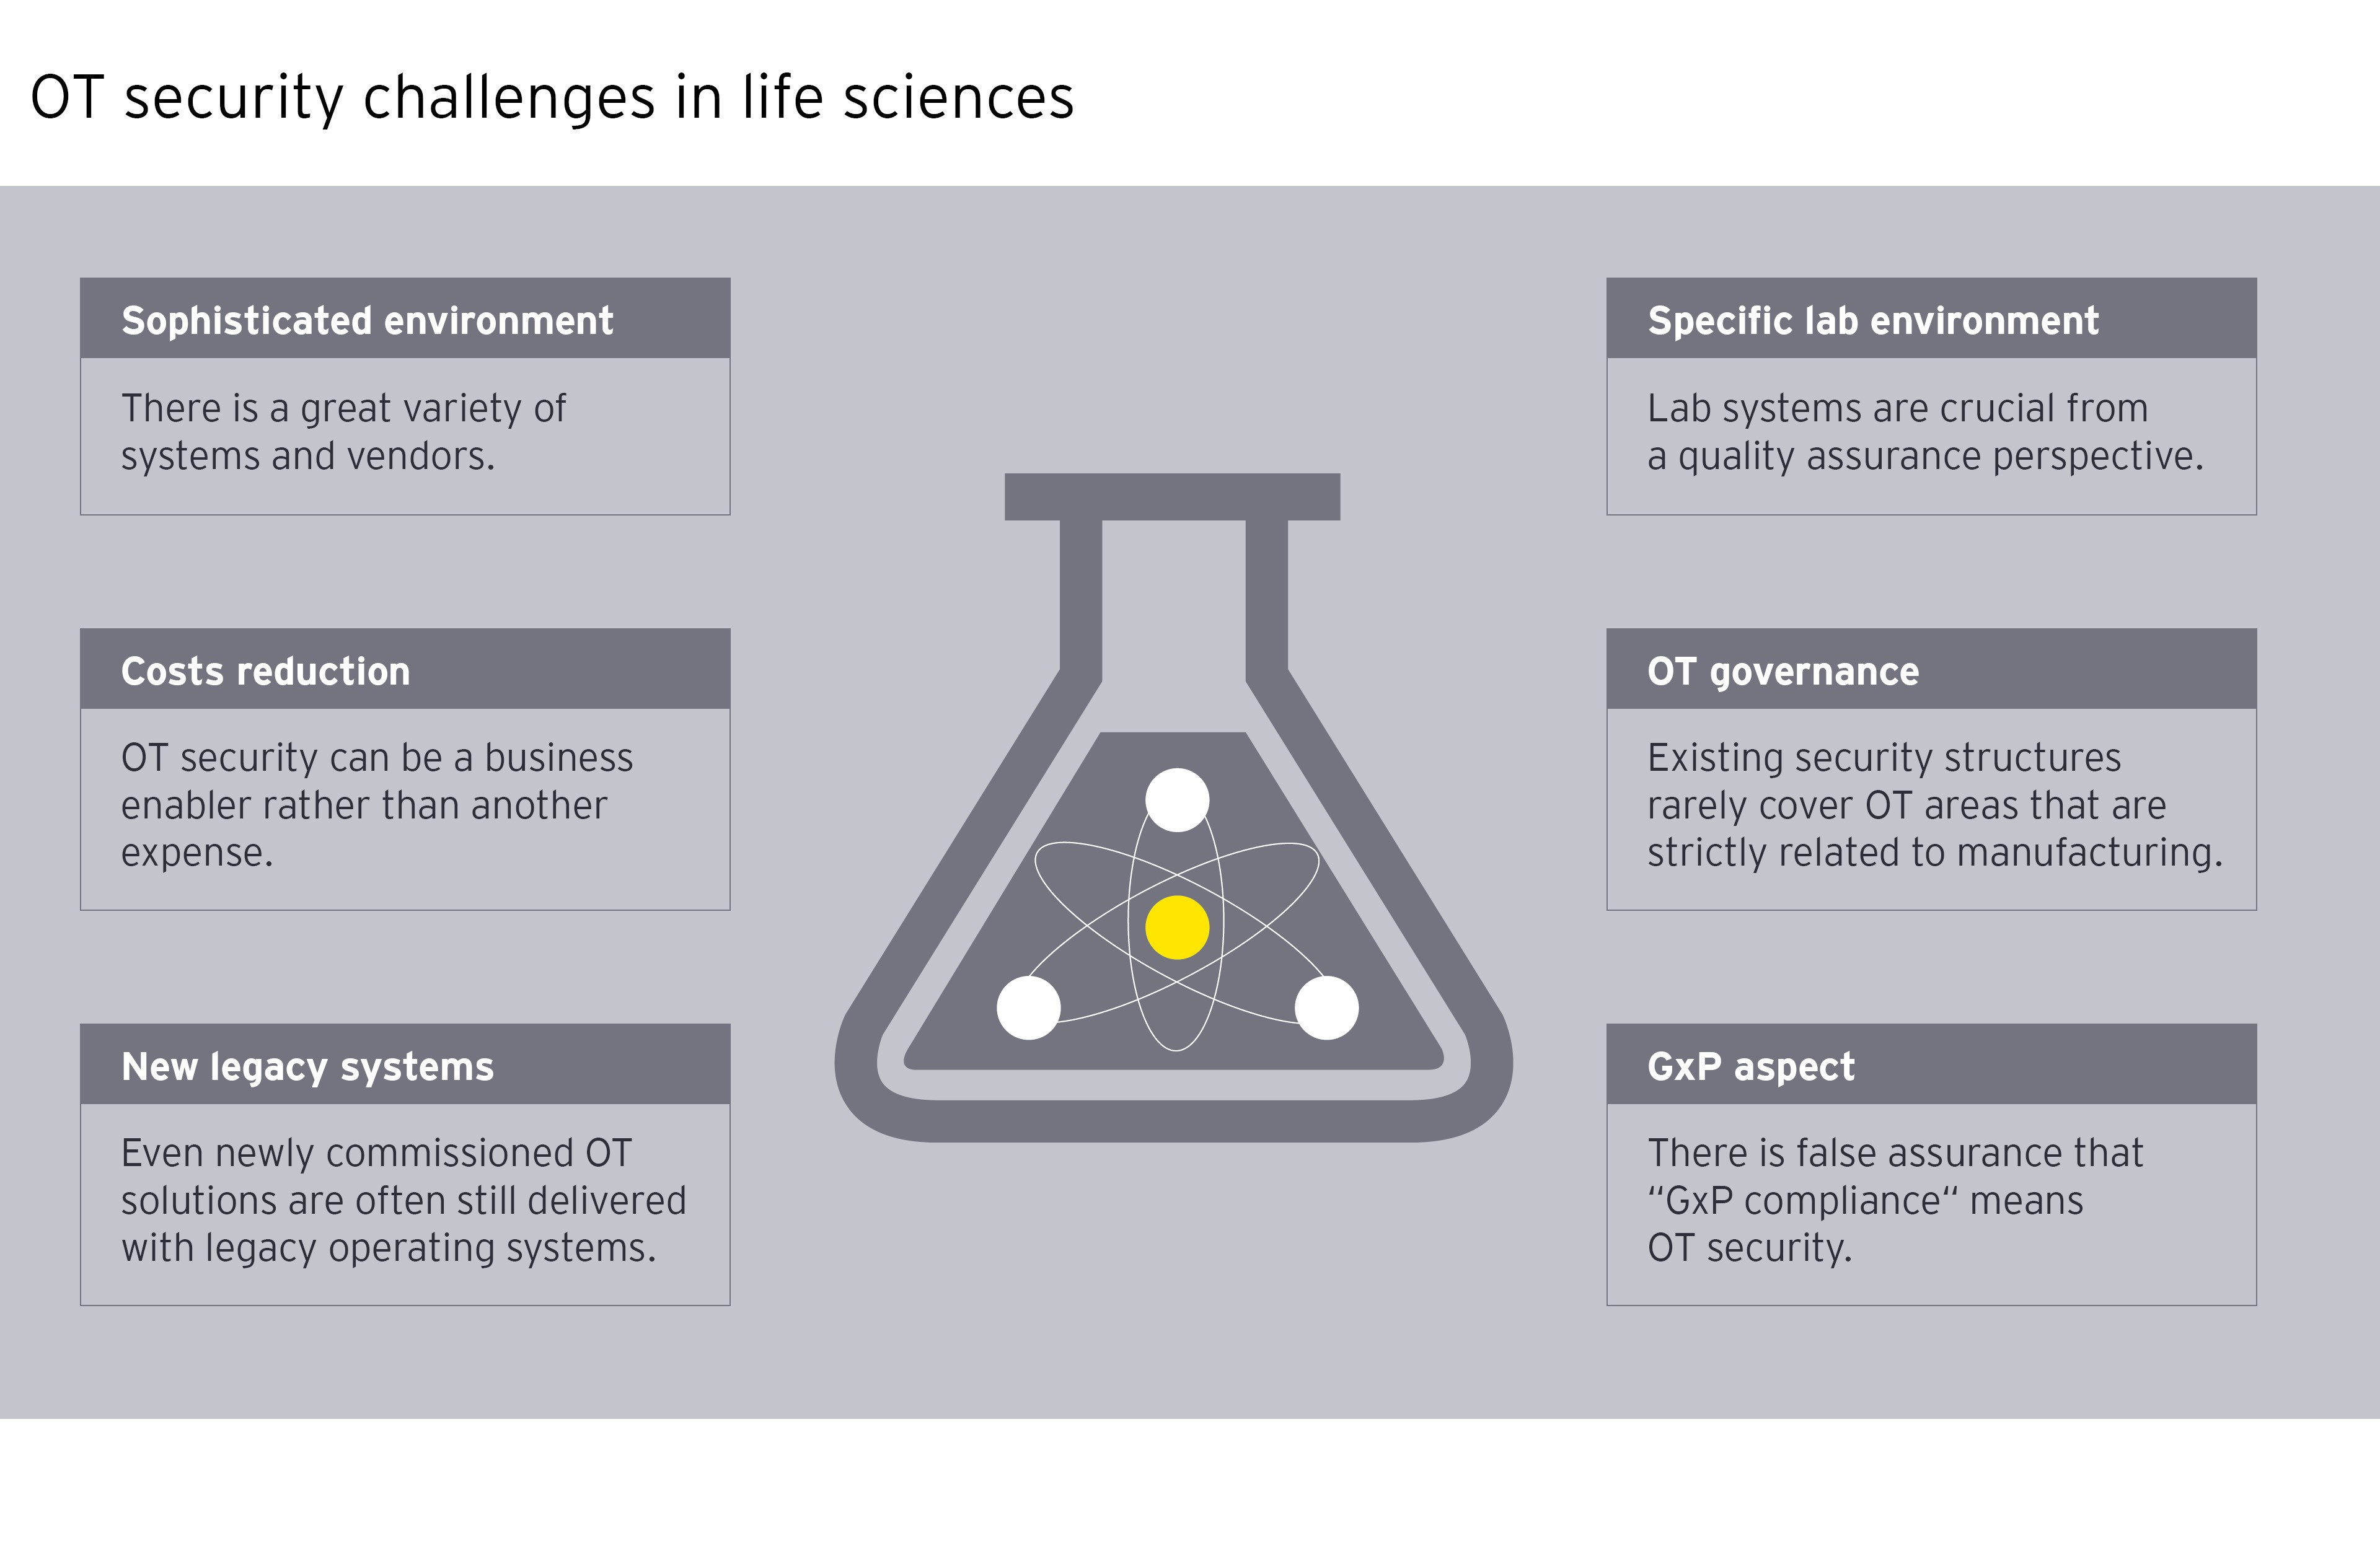 OT security challenges in life sciences